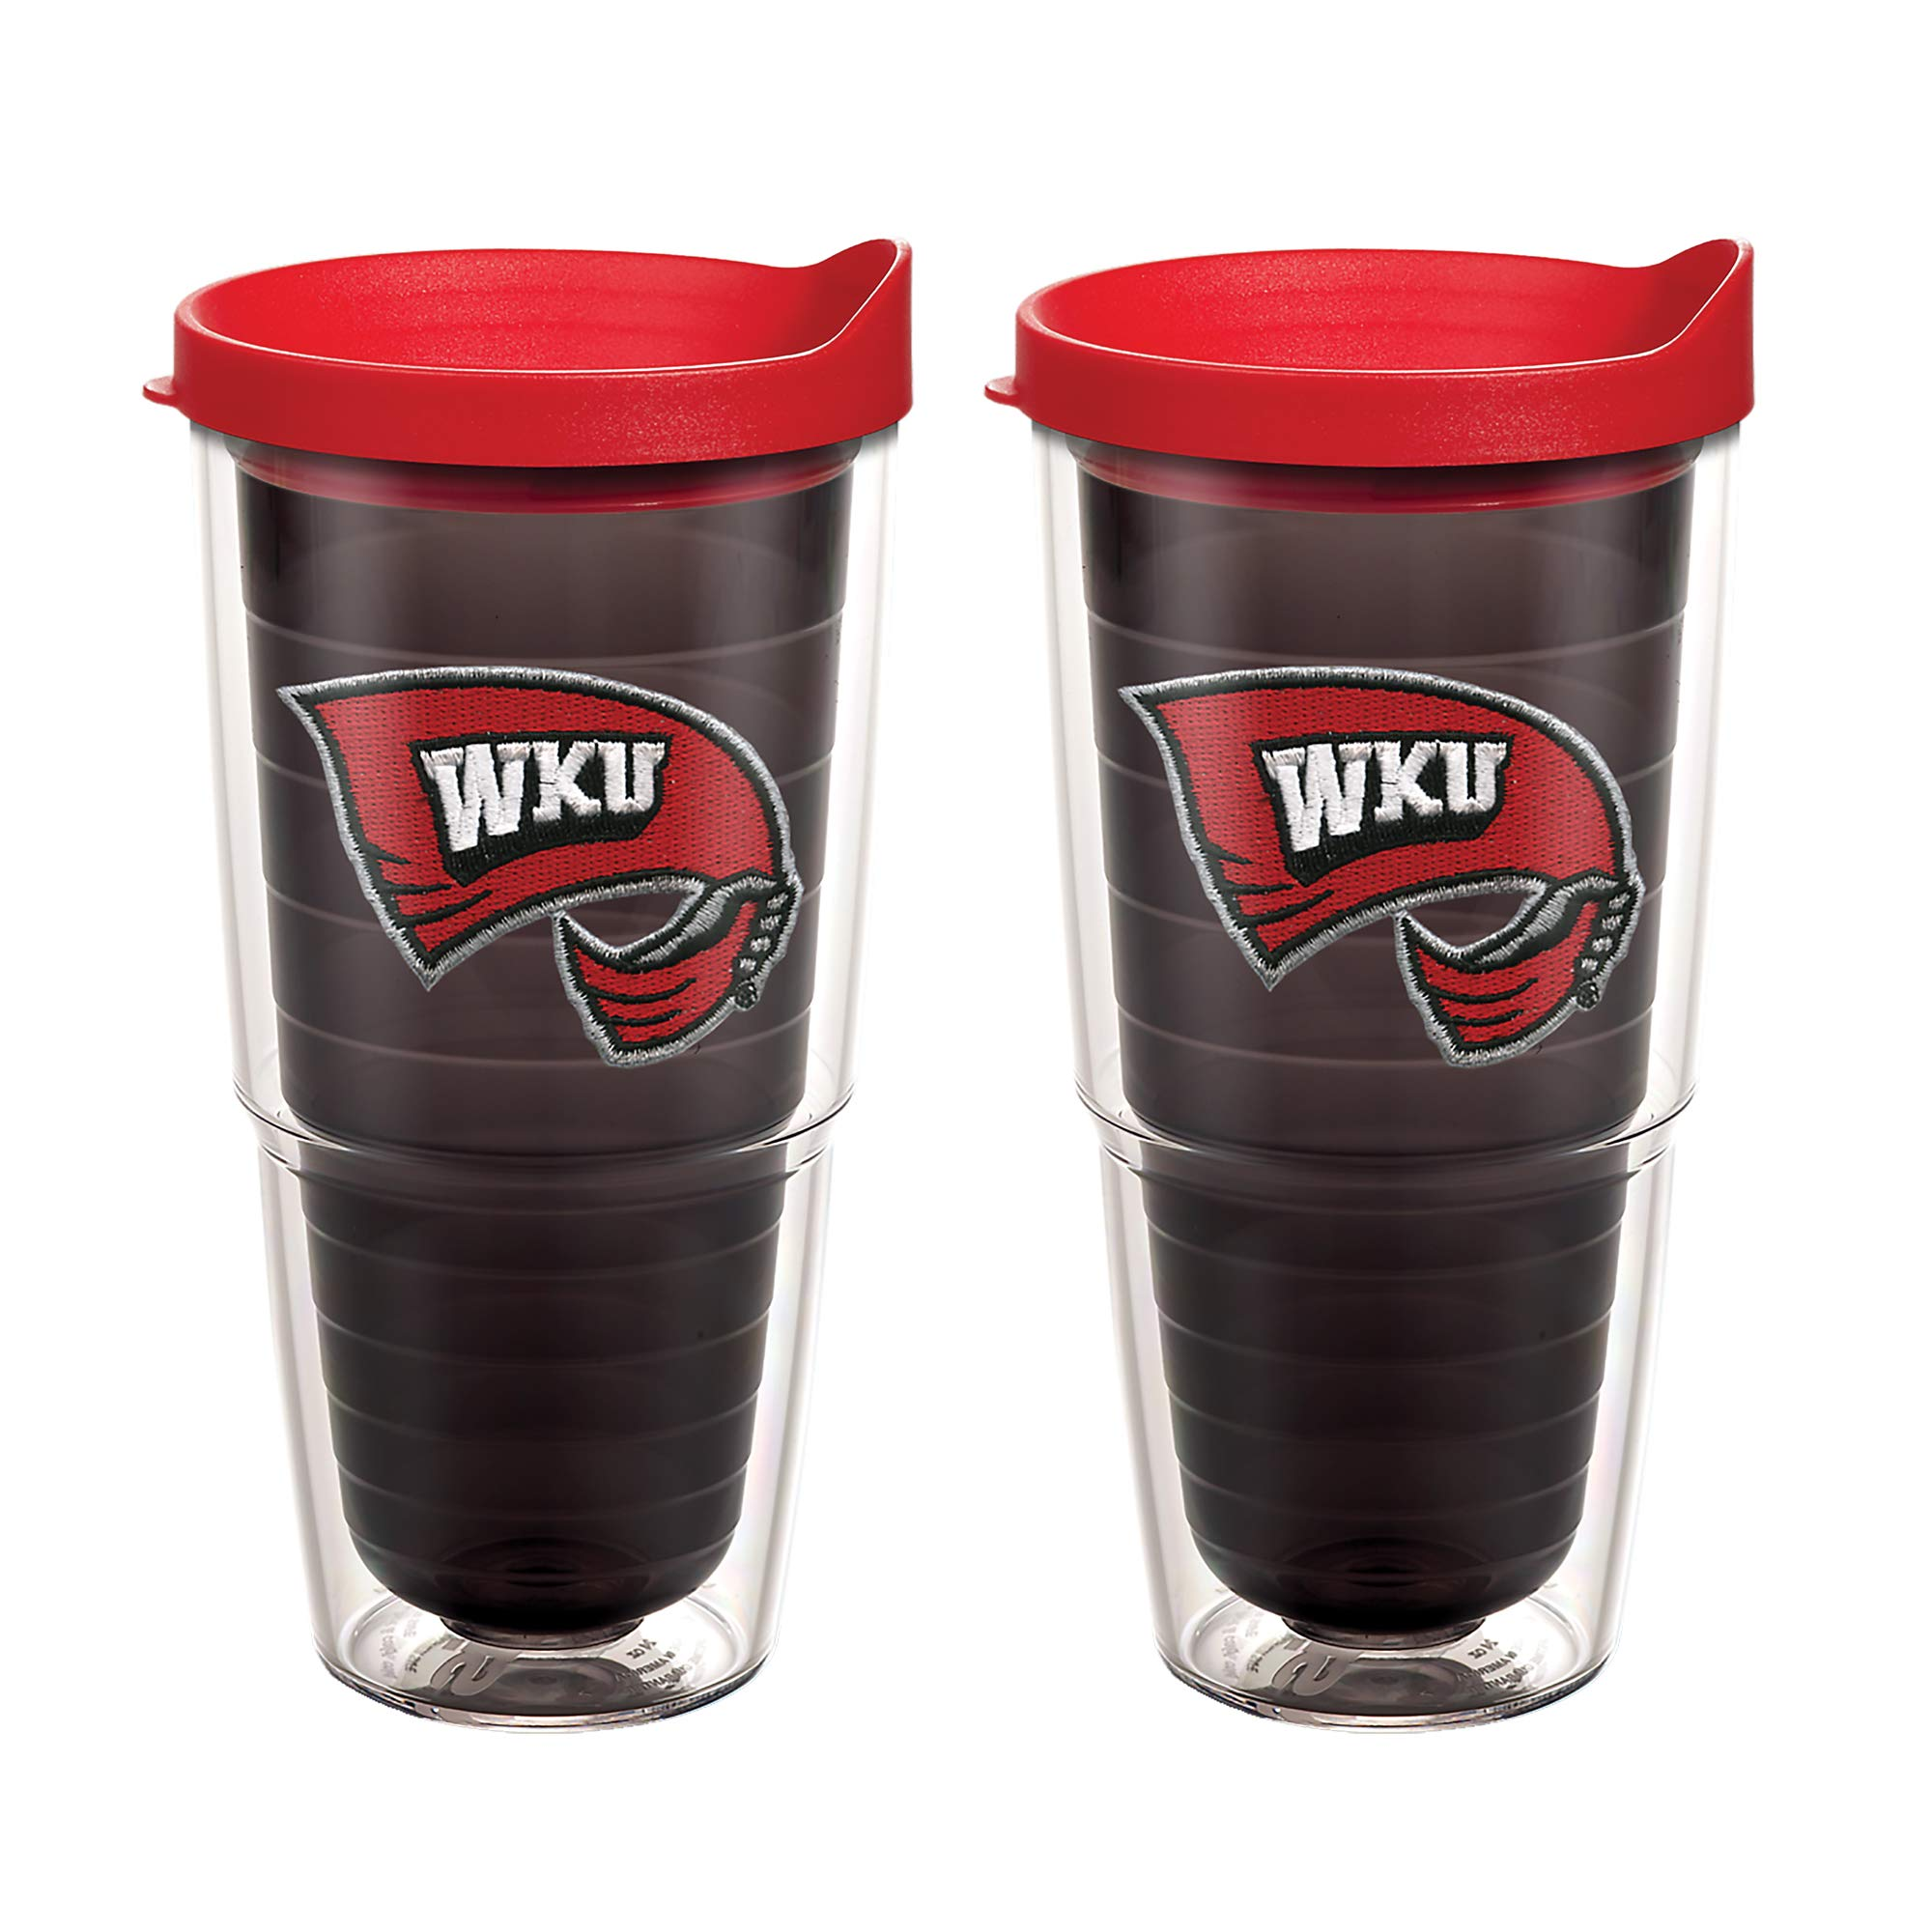 Tervis 1077996 Western Kentucky Hilltoppers Logo Tumbler with Emblem and Red Lid 2 Pack 24oz, Quartz